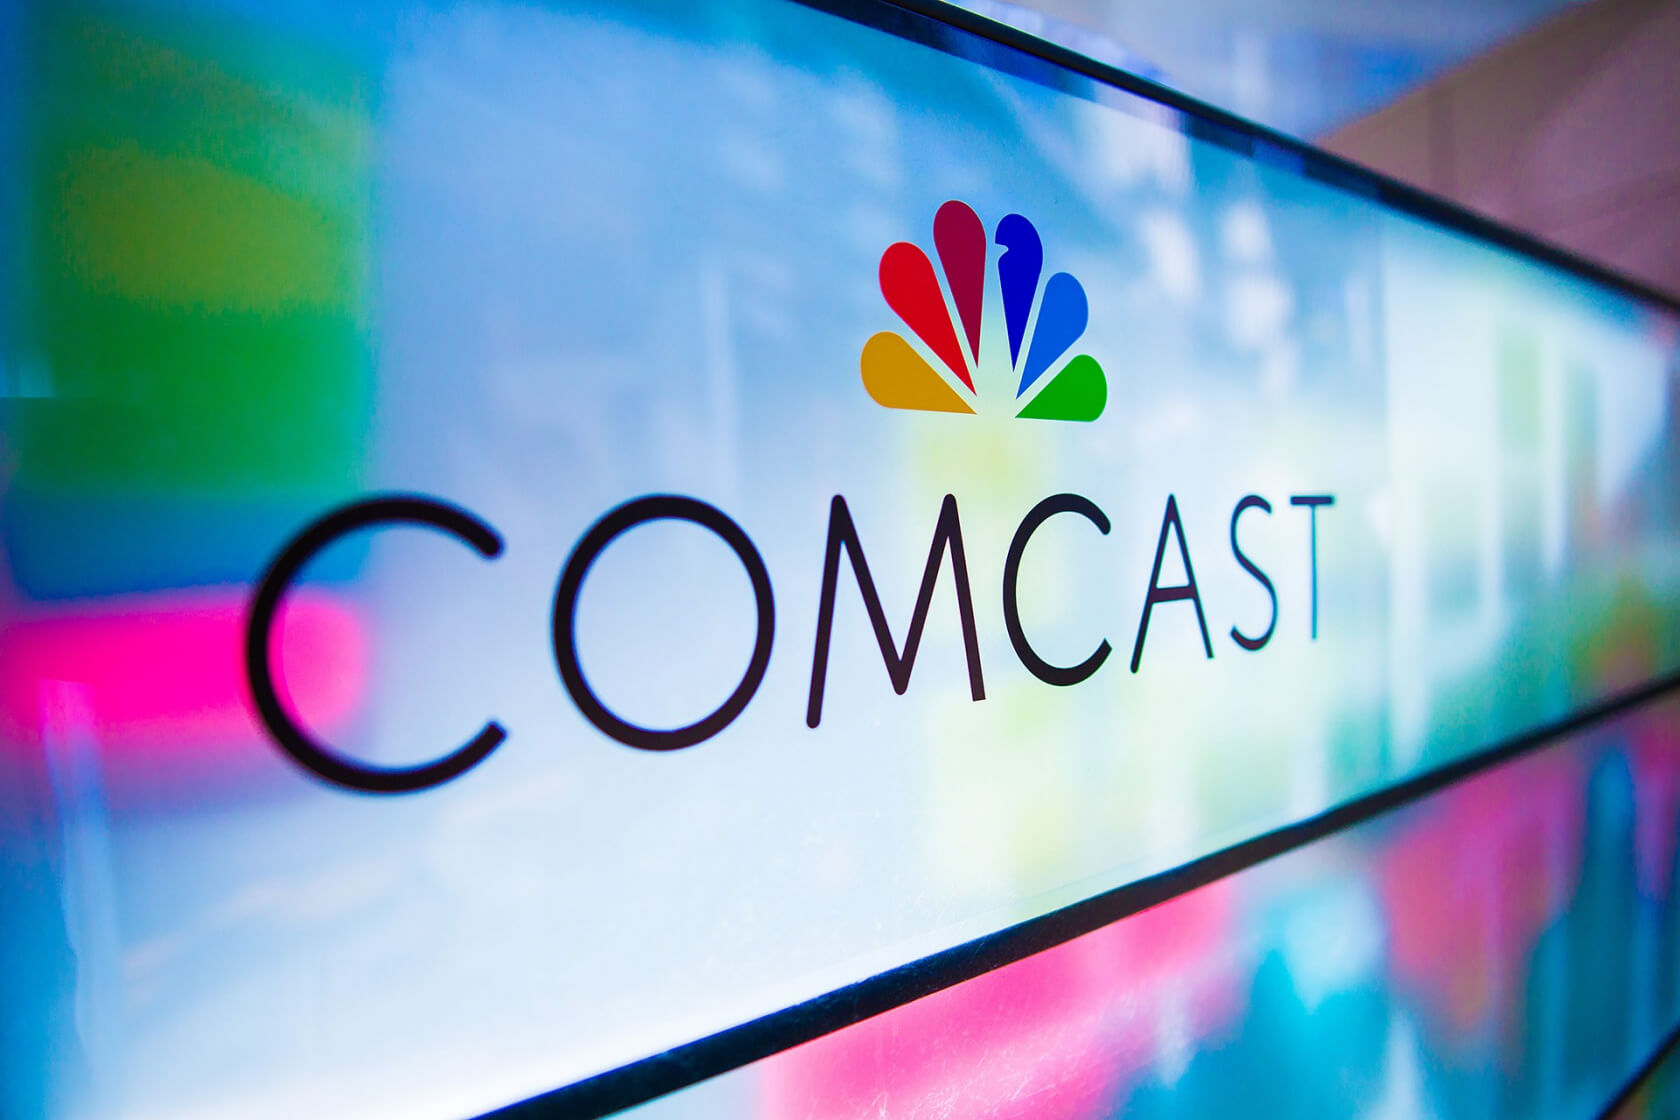 Comcast said new tax bill would create thousands of jobs, ended up quietly firing 500 instead